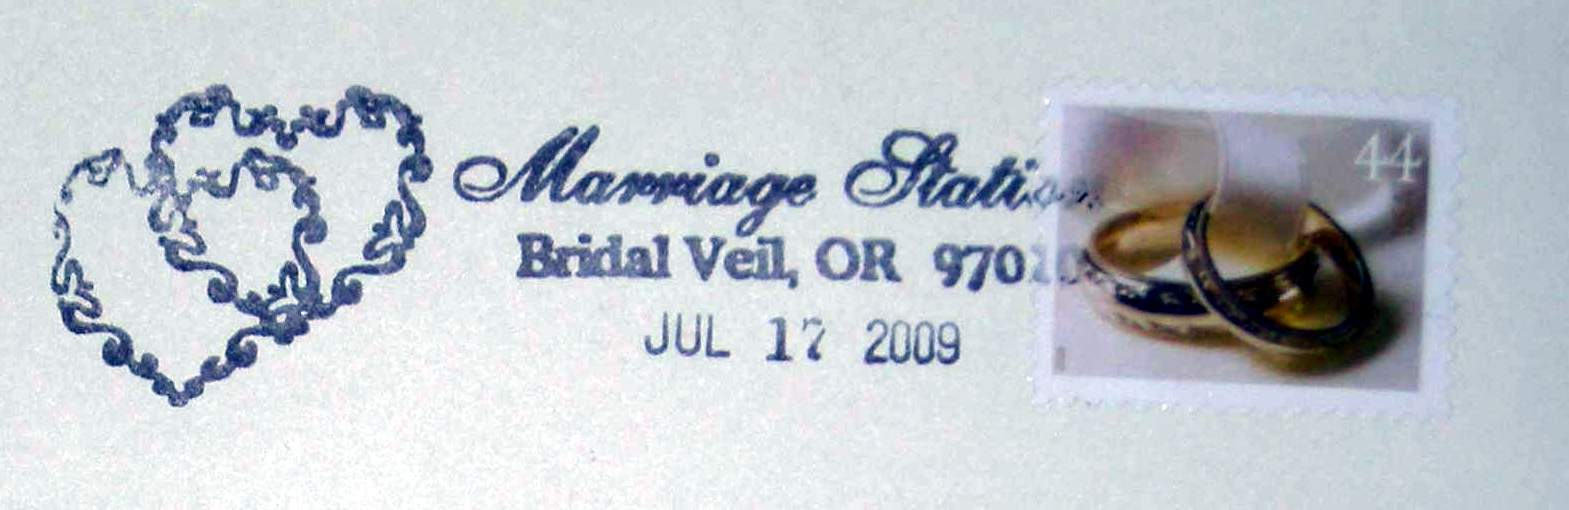 DIY, Stationery, Invitations, Stamp, Bridal veil post office, Postmark